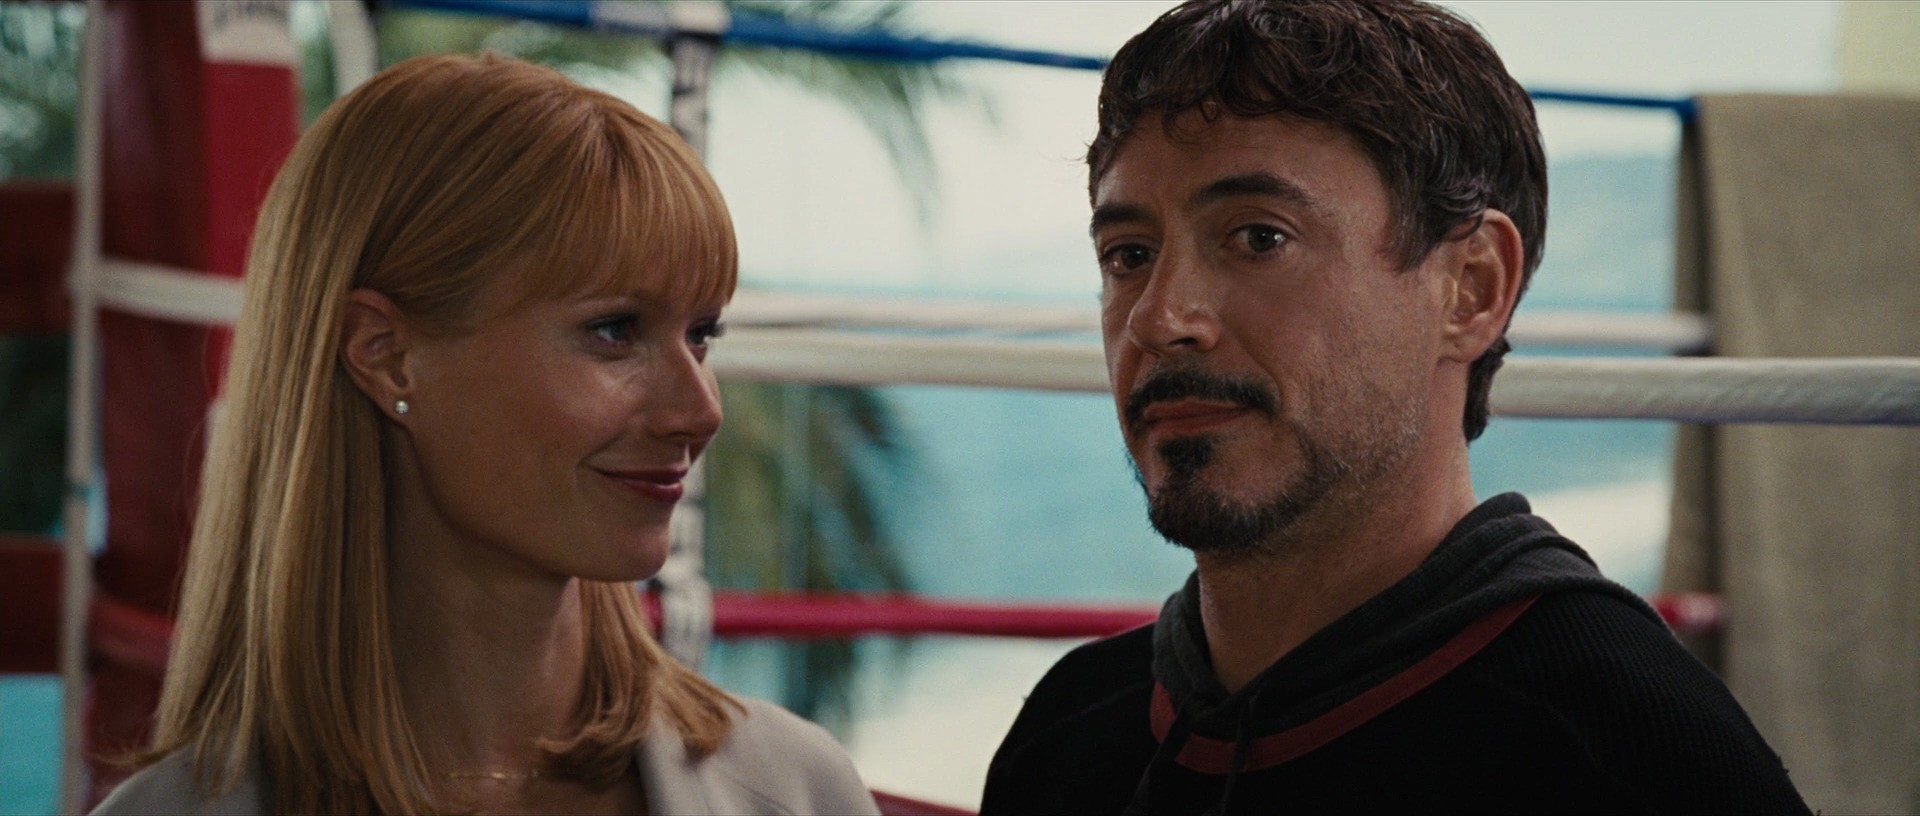 http://caps.pictures/201/0-iron-man2/full/iron-man2-movie-screencaps.com-2982.jpg